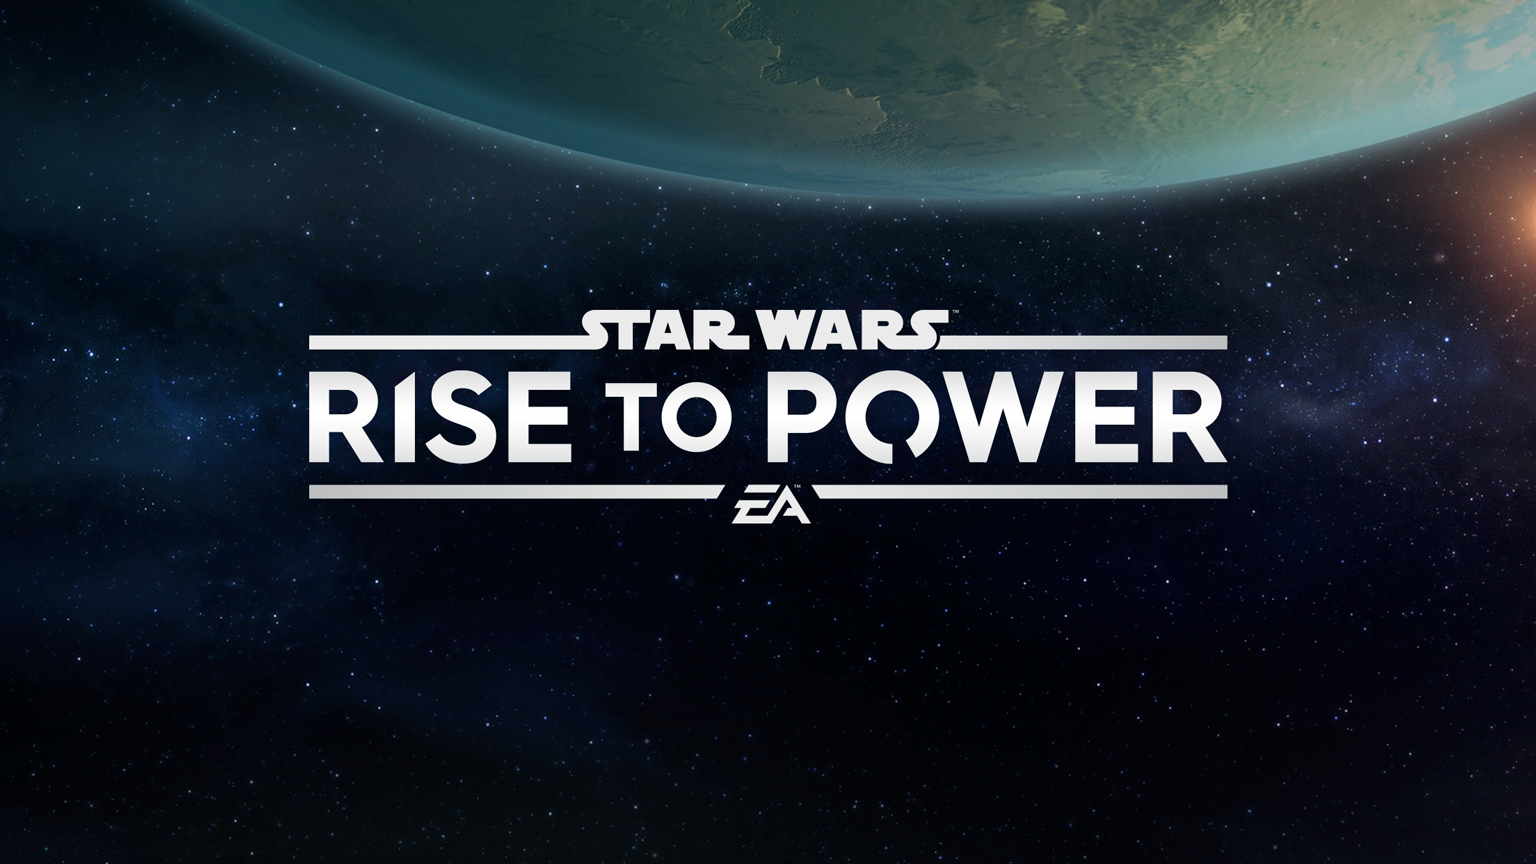 Star Wars Rise to Power